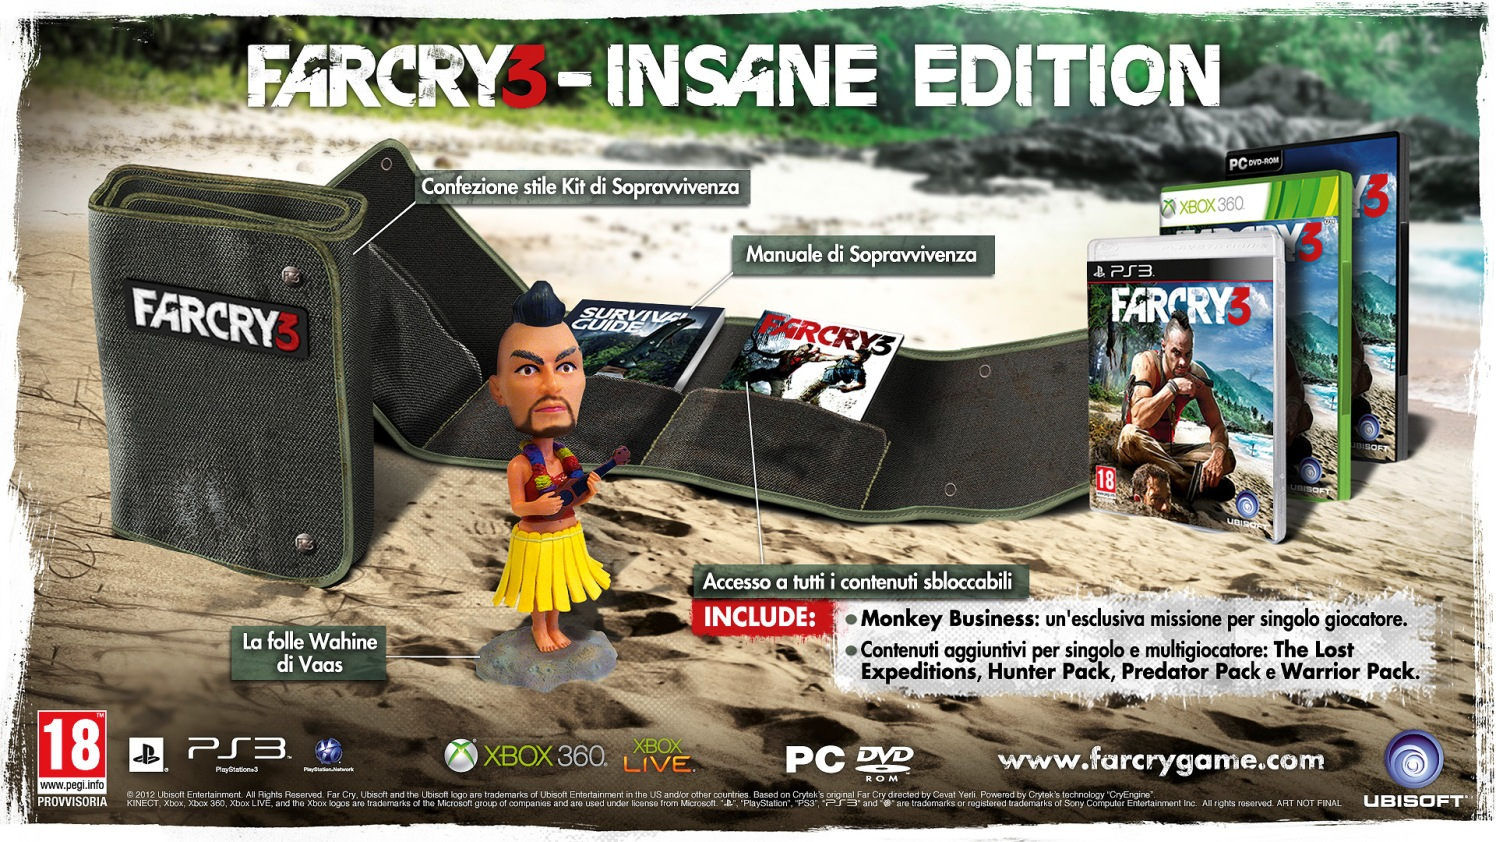 Ubisoft svela la Insane Edition di Far Cry 3